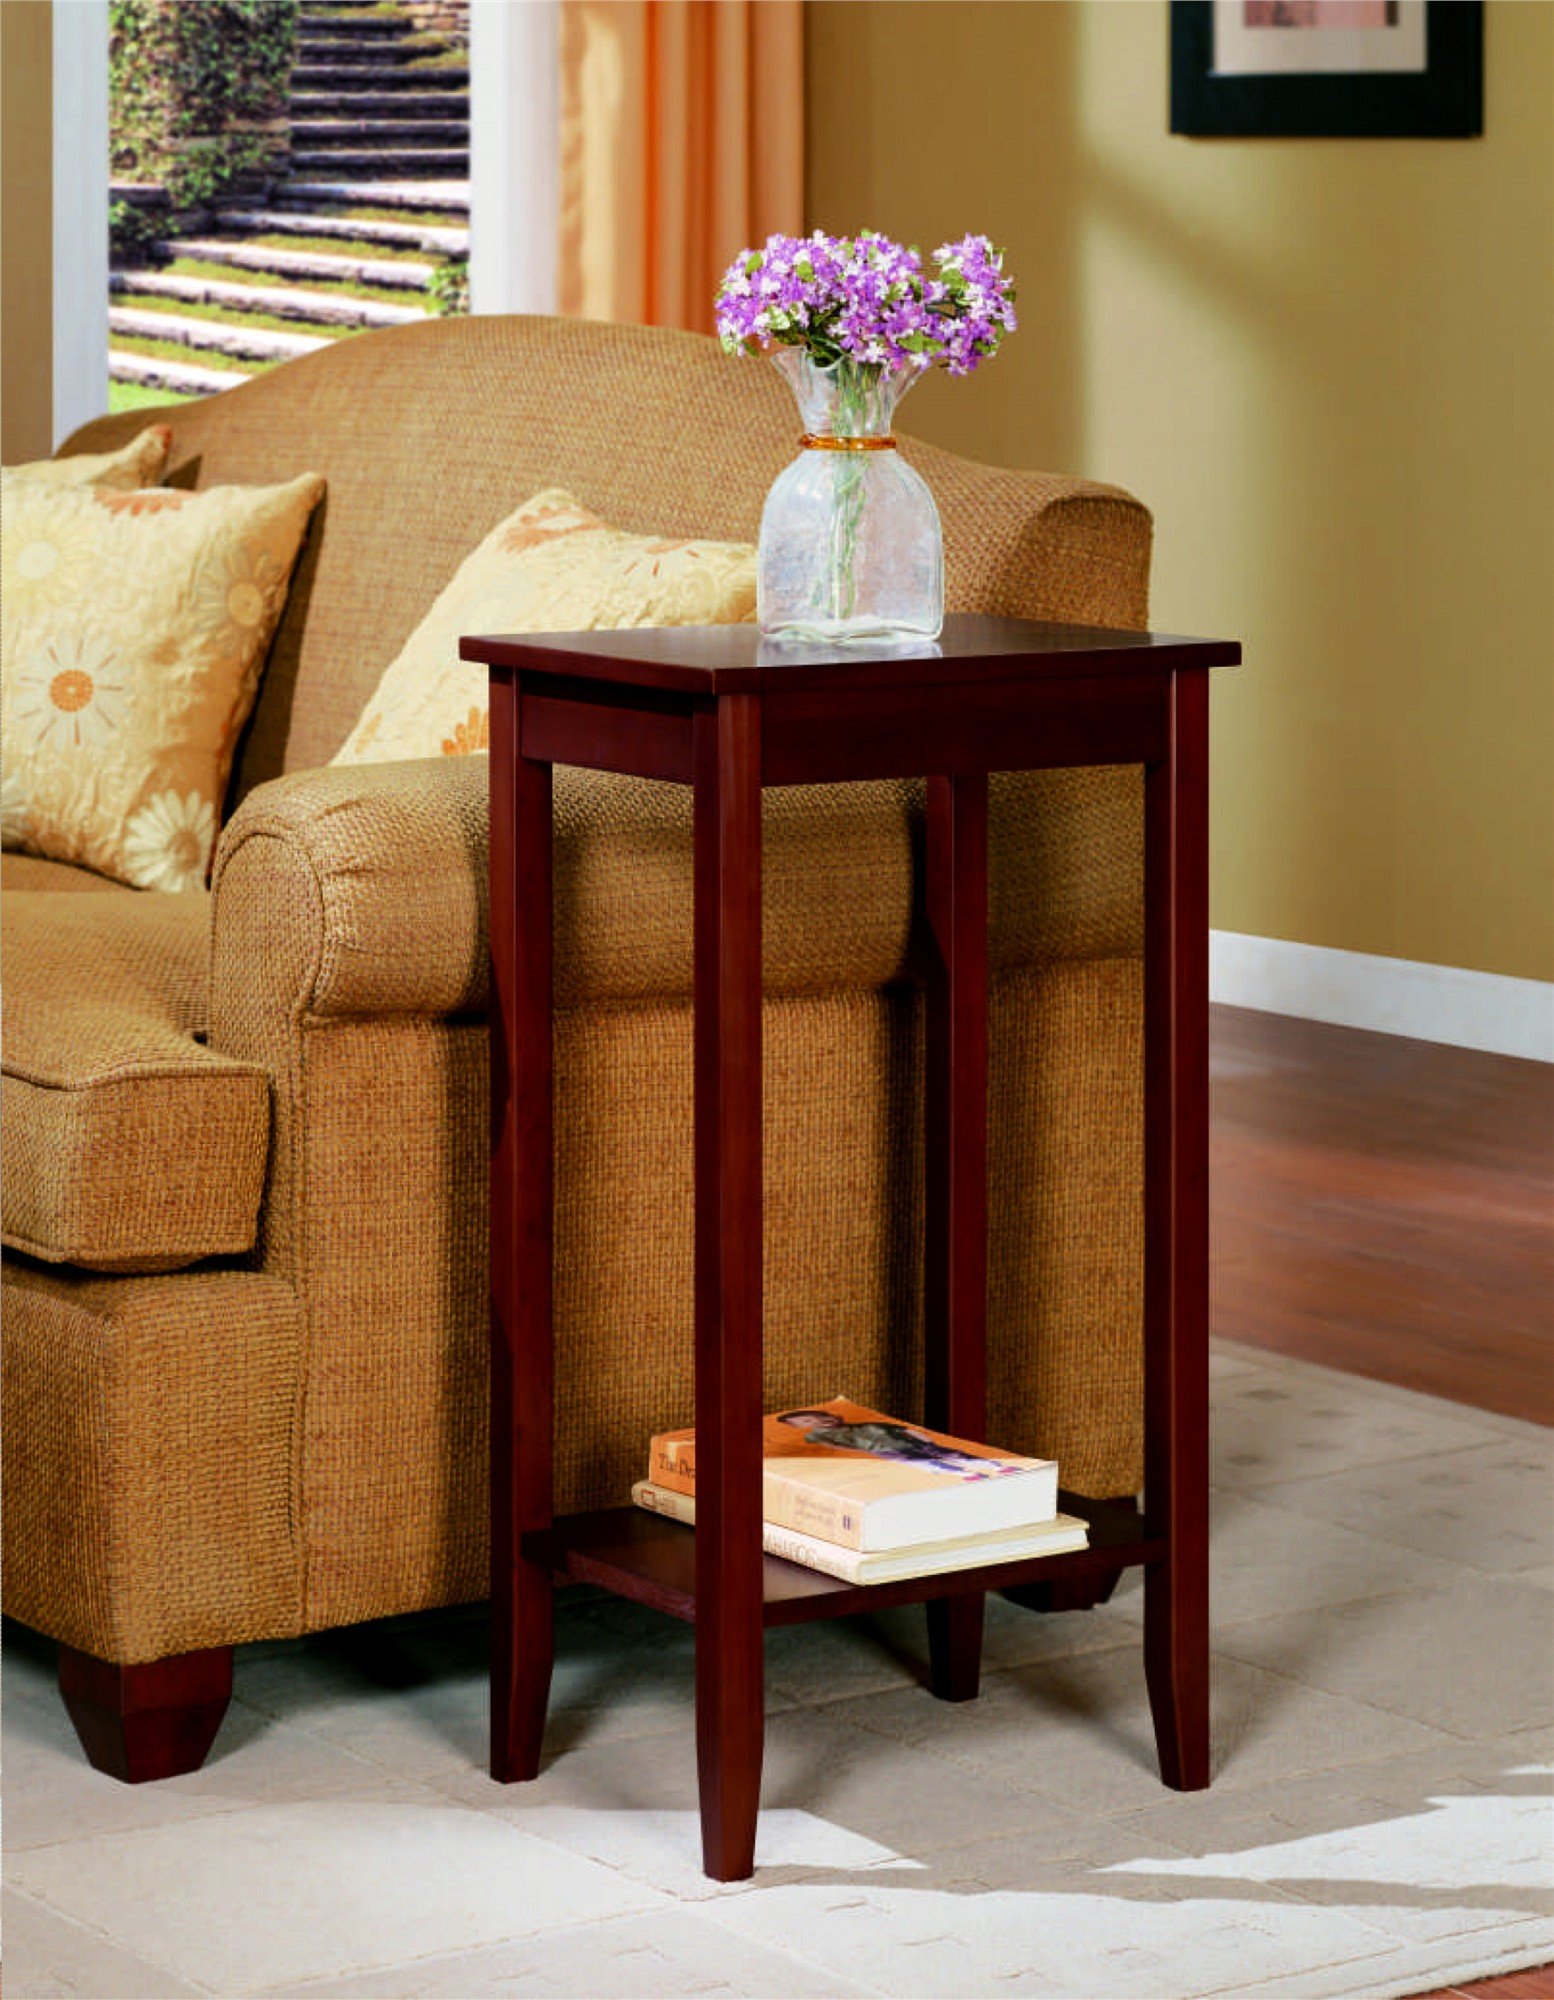 rosewood tall end table dhp furniture painted wood accent mirrored inexpensive console big umbrellas for shade skinny couch entry way tablecloth glass monarch grey modern coffee